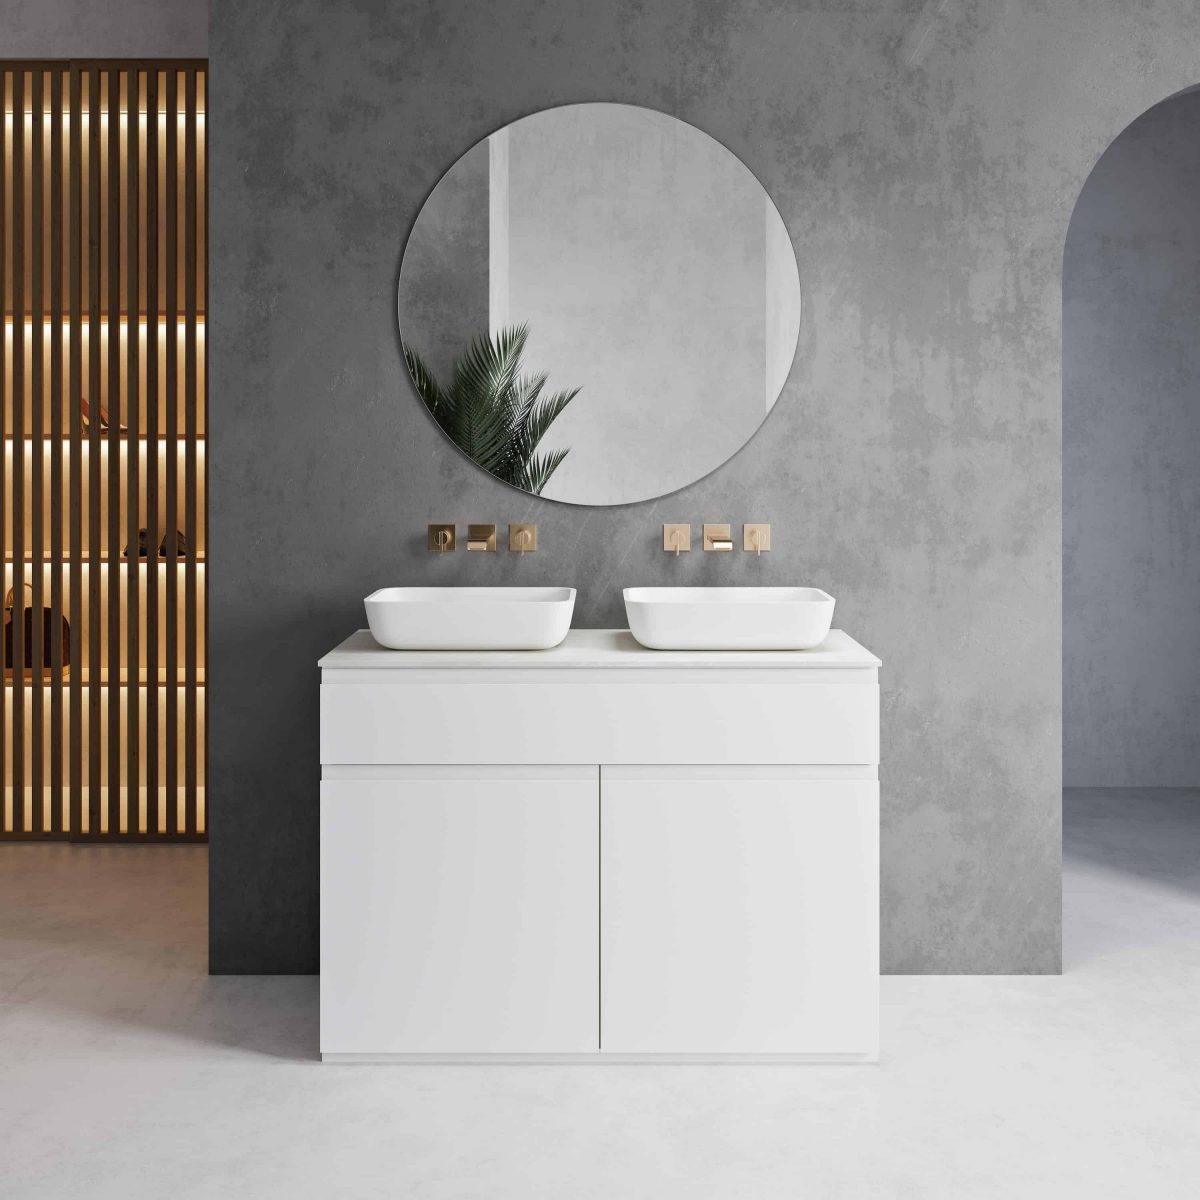 Solid Surface Products